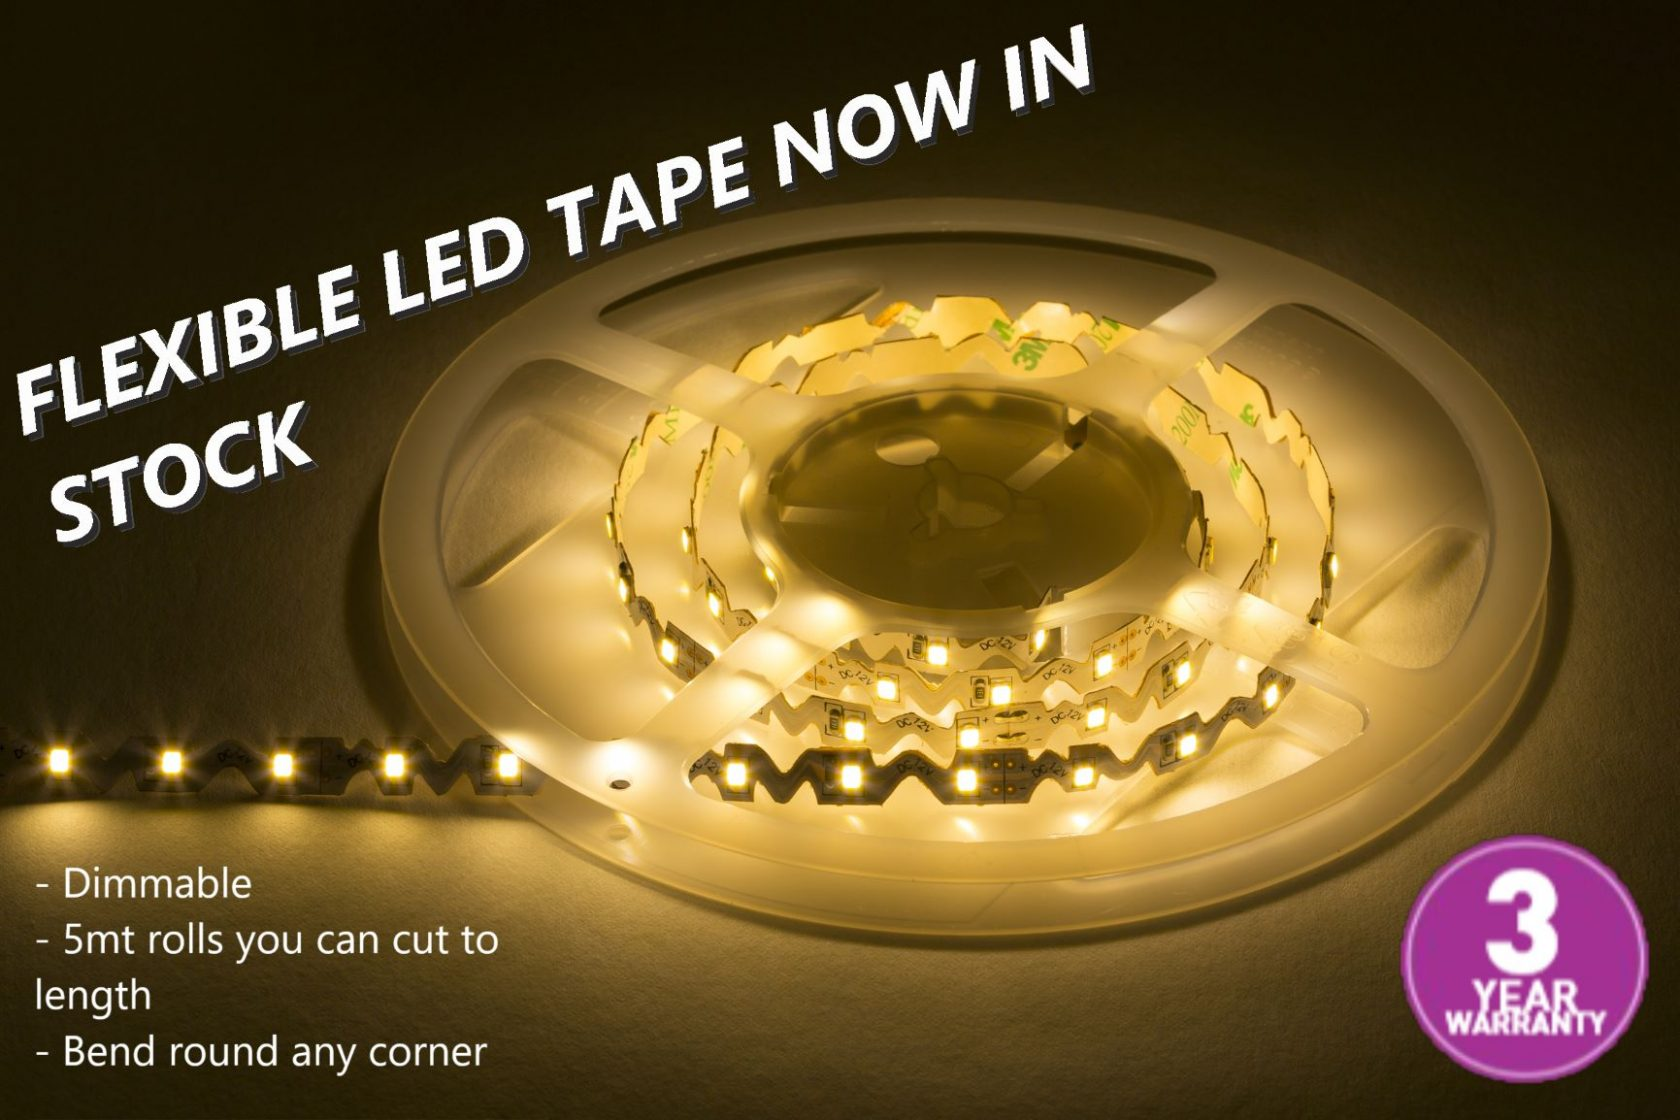 LED-TAPEsized